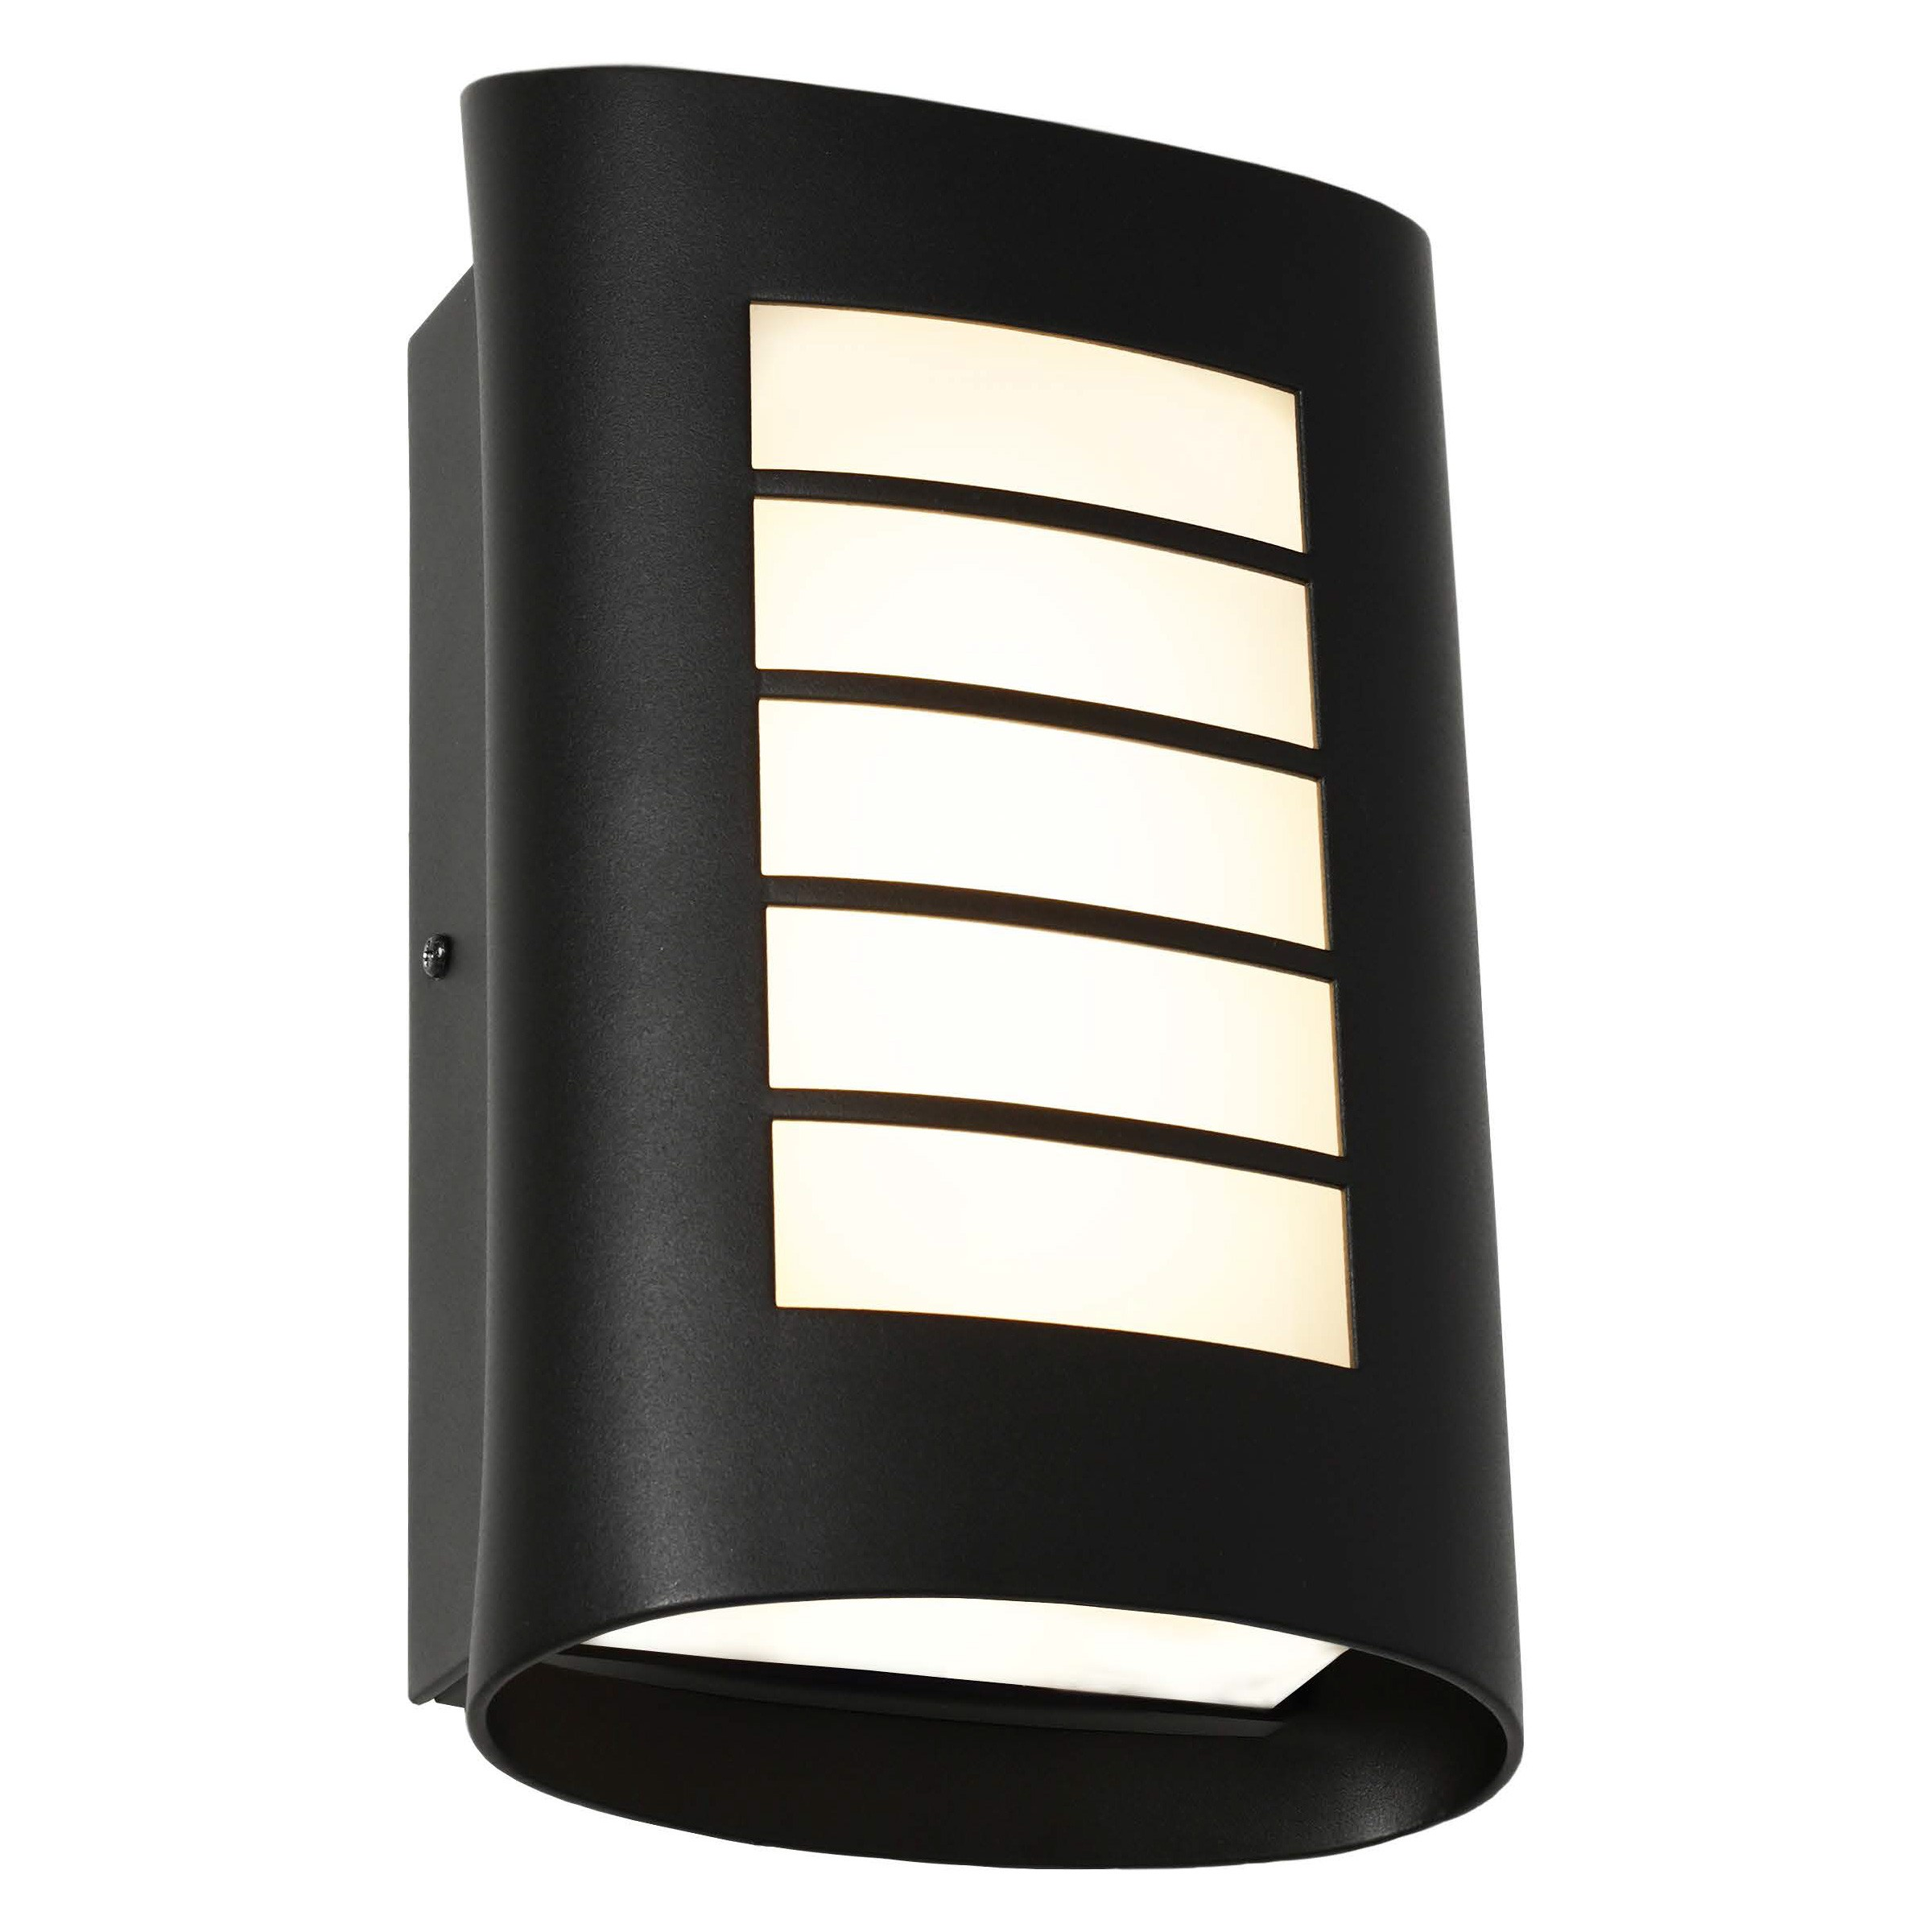 Bicheno IP44 Metal Exterior LED Wall Light, Black